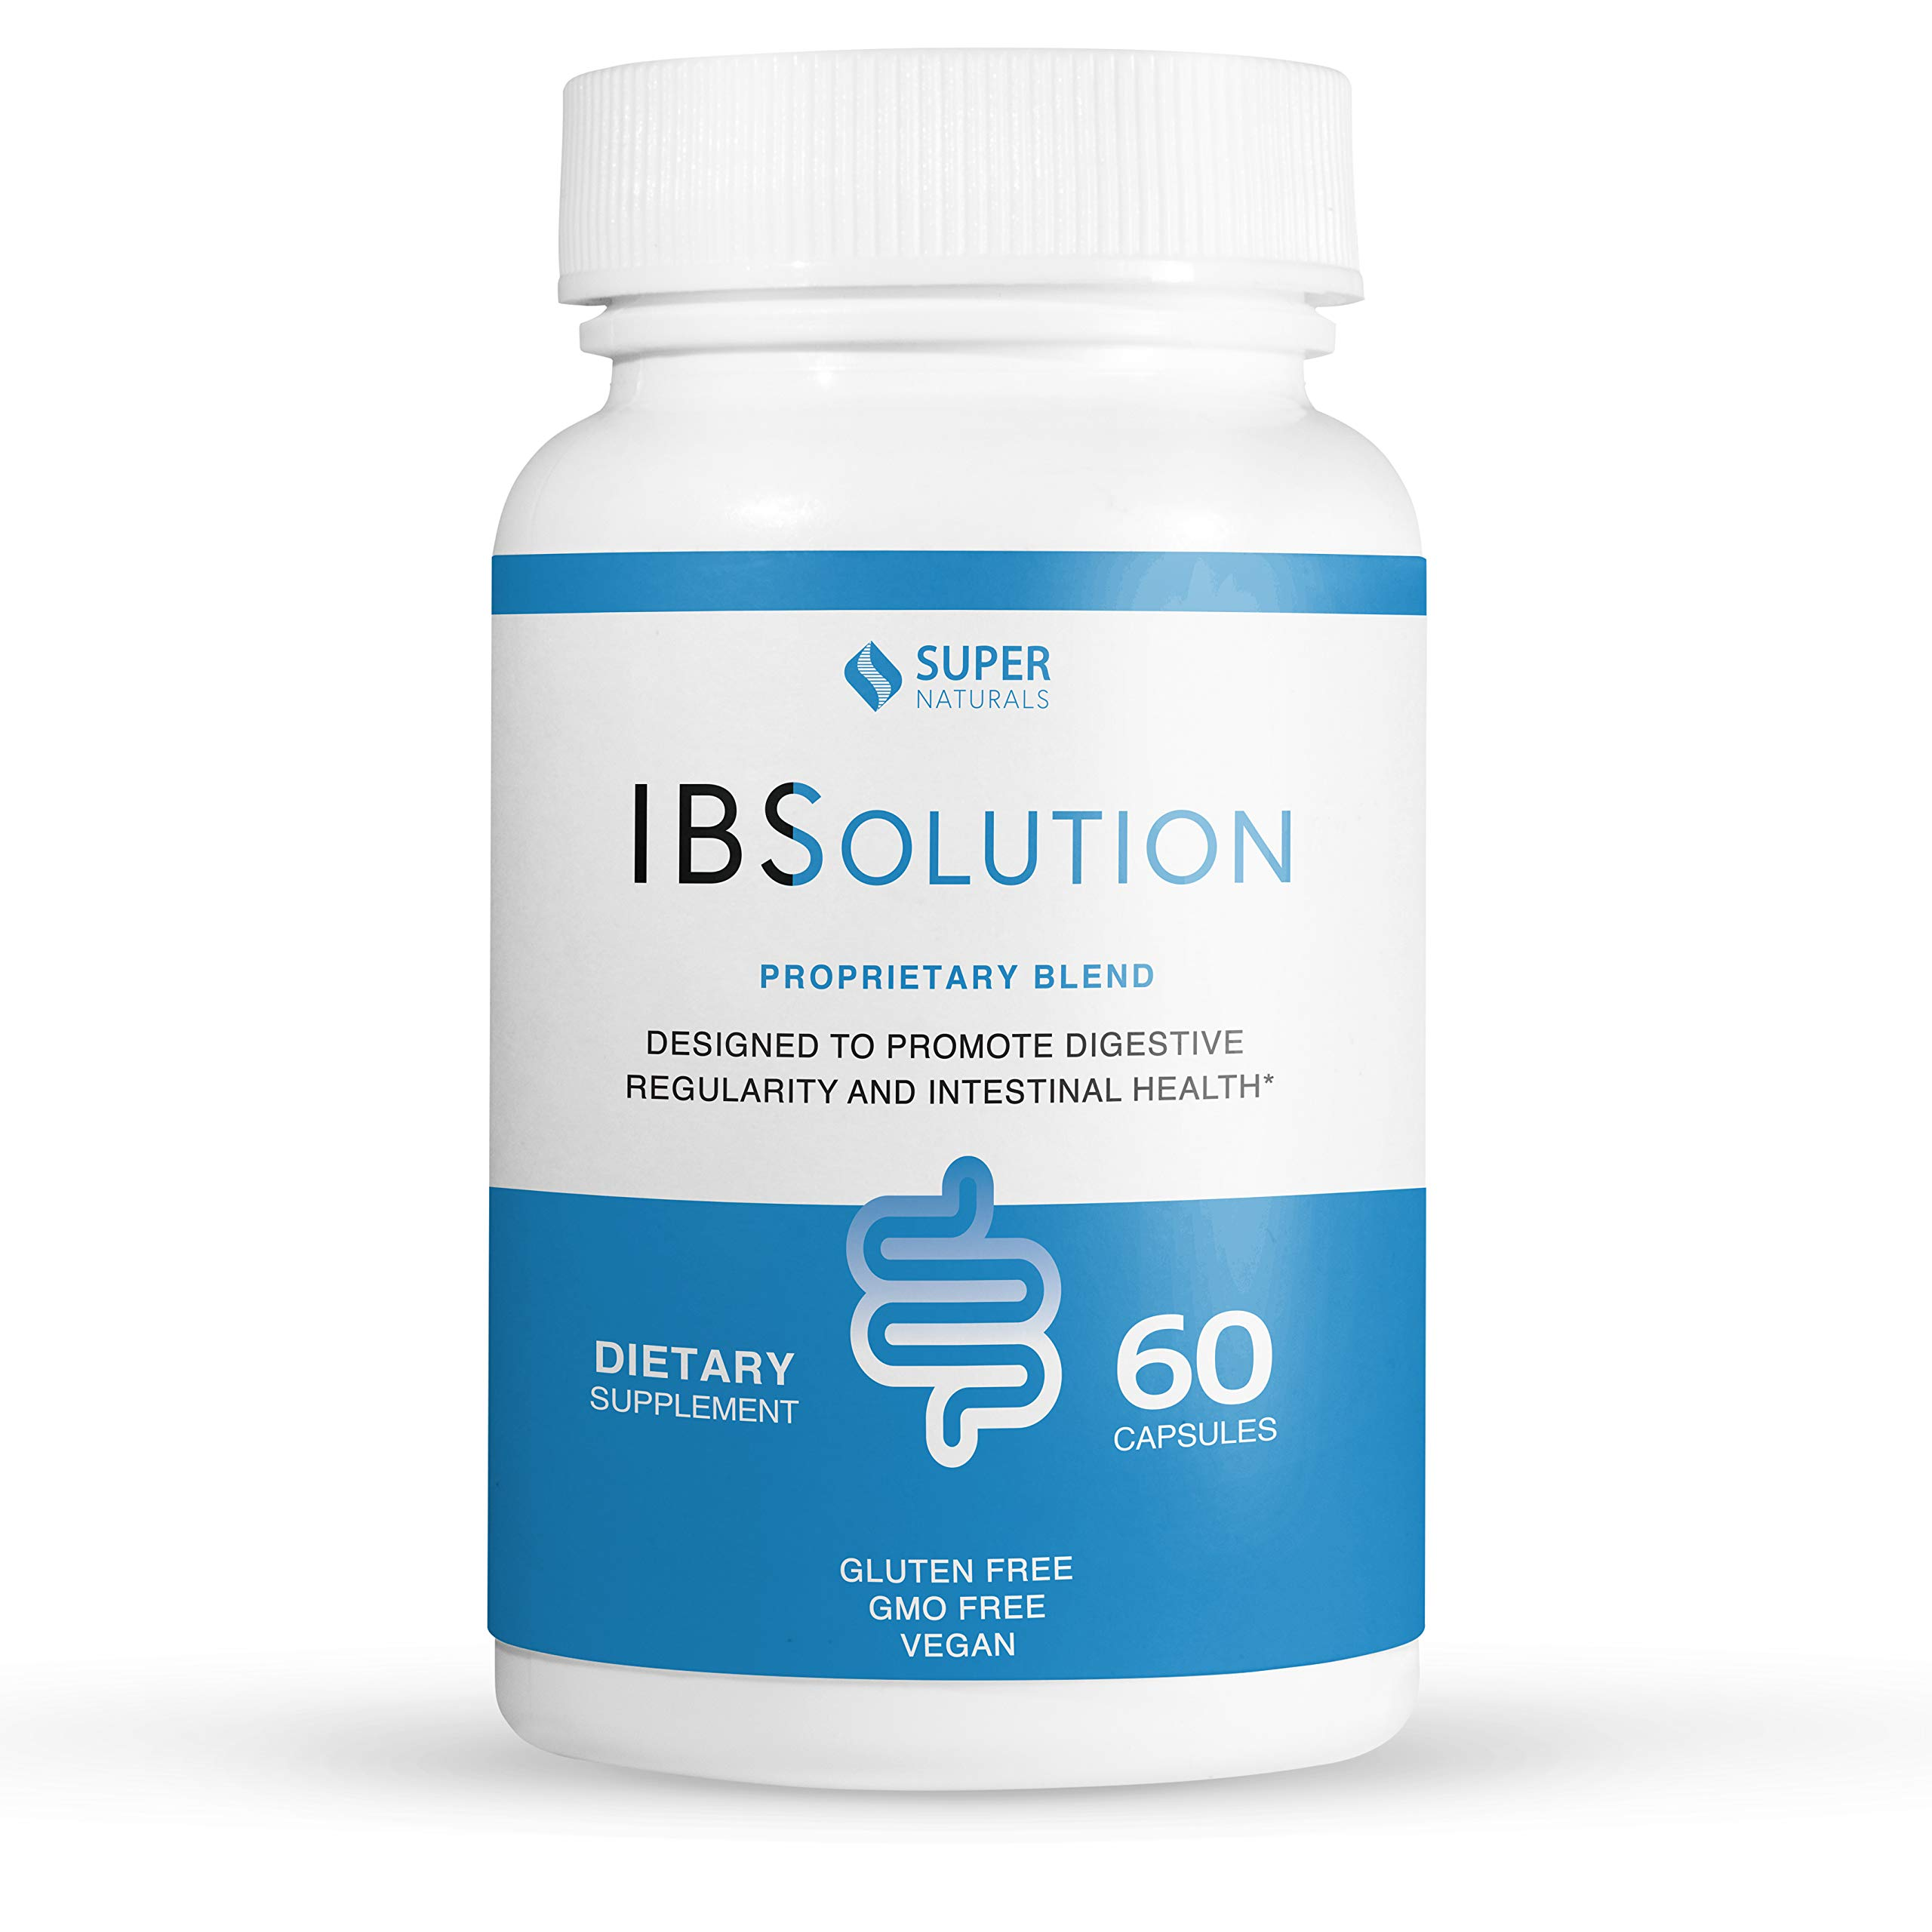 IBS Treatment by IBSolution | All-Natural Relief For Symptoms of Irritable Bowel Syndrome Including Bloating, Constipation, Gas, Diarrhea, and Abdominal Pain | Supports Digestive Health | 60 Capsules by JLM Nutritionals